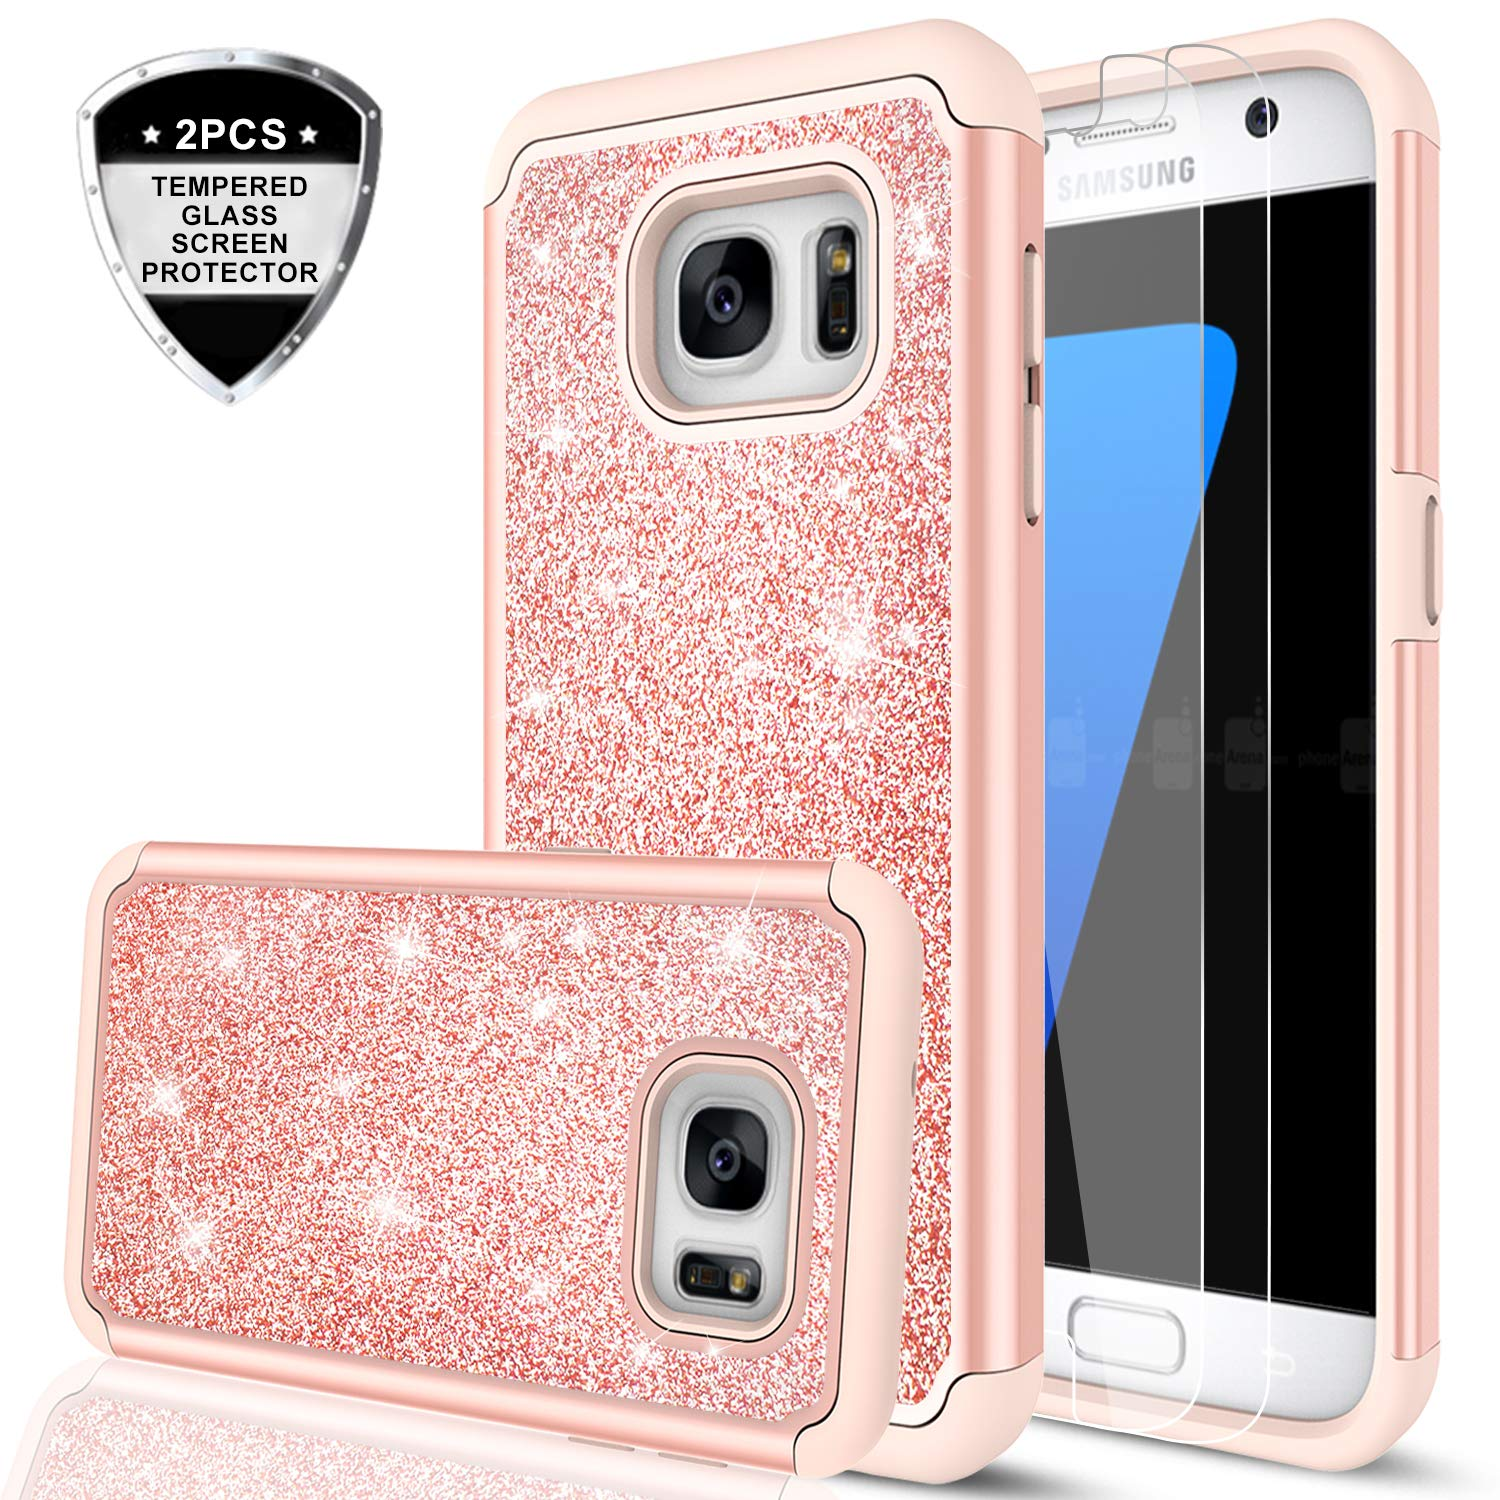 Galaxy S7 Case with Tempered Glass Screen Protector [2 Pack], LeYi Glitter Bling Girls Women [PC Silicone Leather] Dual Layer Heavy Duty Protective Phone Case for Samsung Galaxy S7 (2016) TP Rose Gold 4334976338